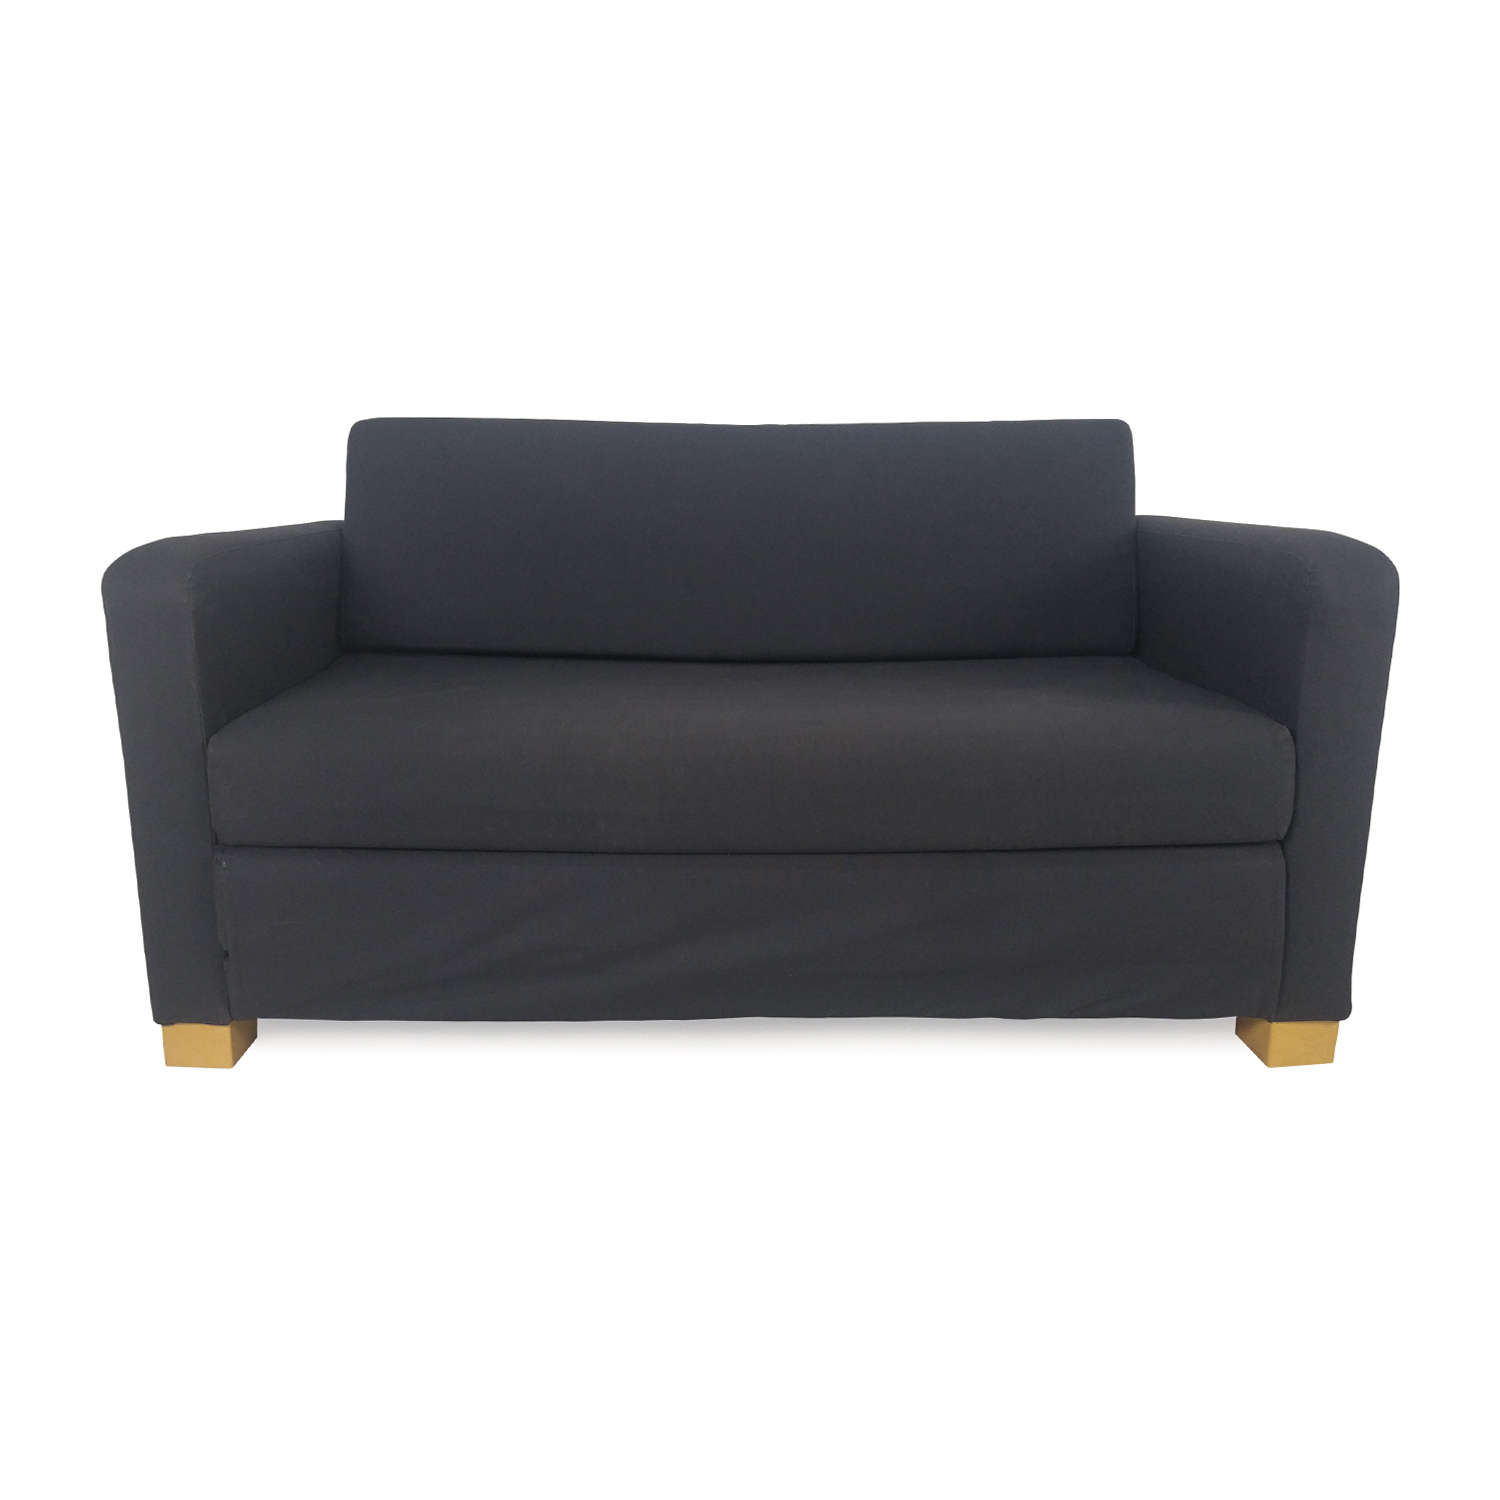 futon sofa beds ikea double futon sofa bed ikea and futon sofa bed ikea australia. Black Bedroom Furniture Sets. Home Design Ideas